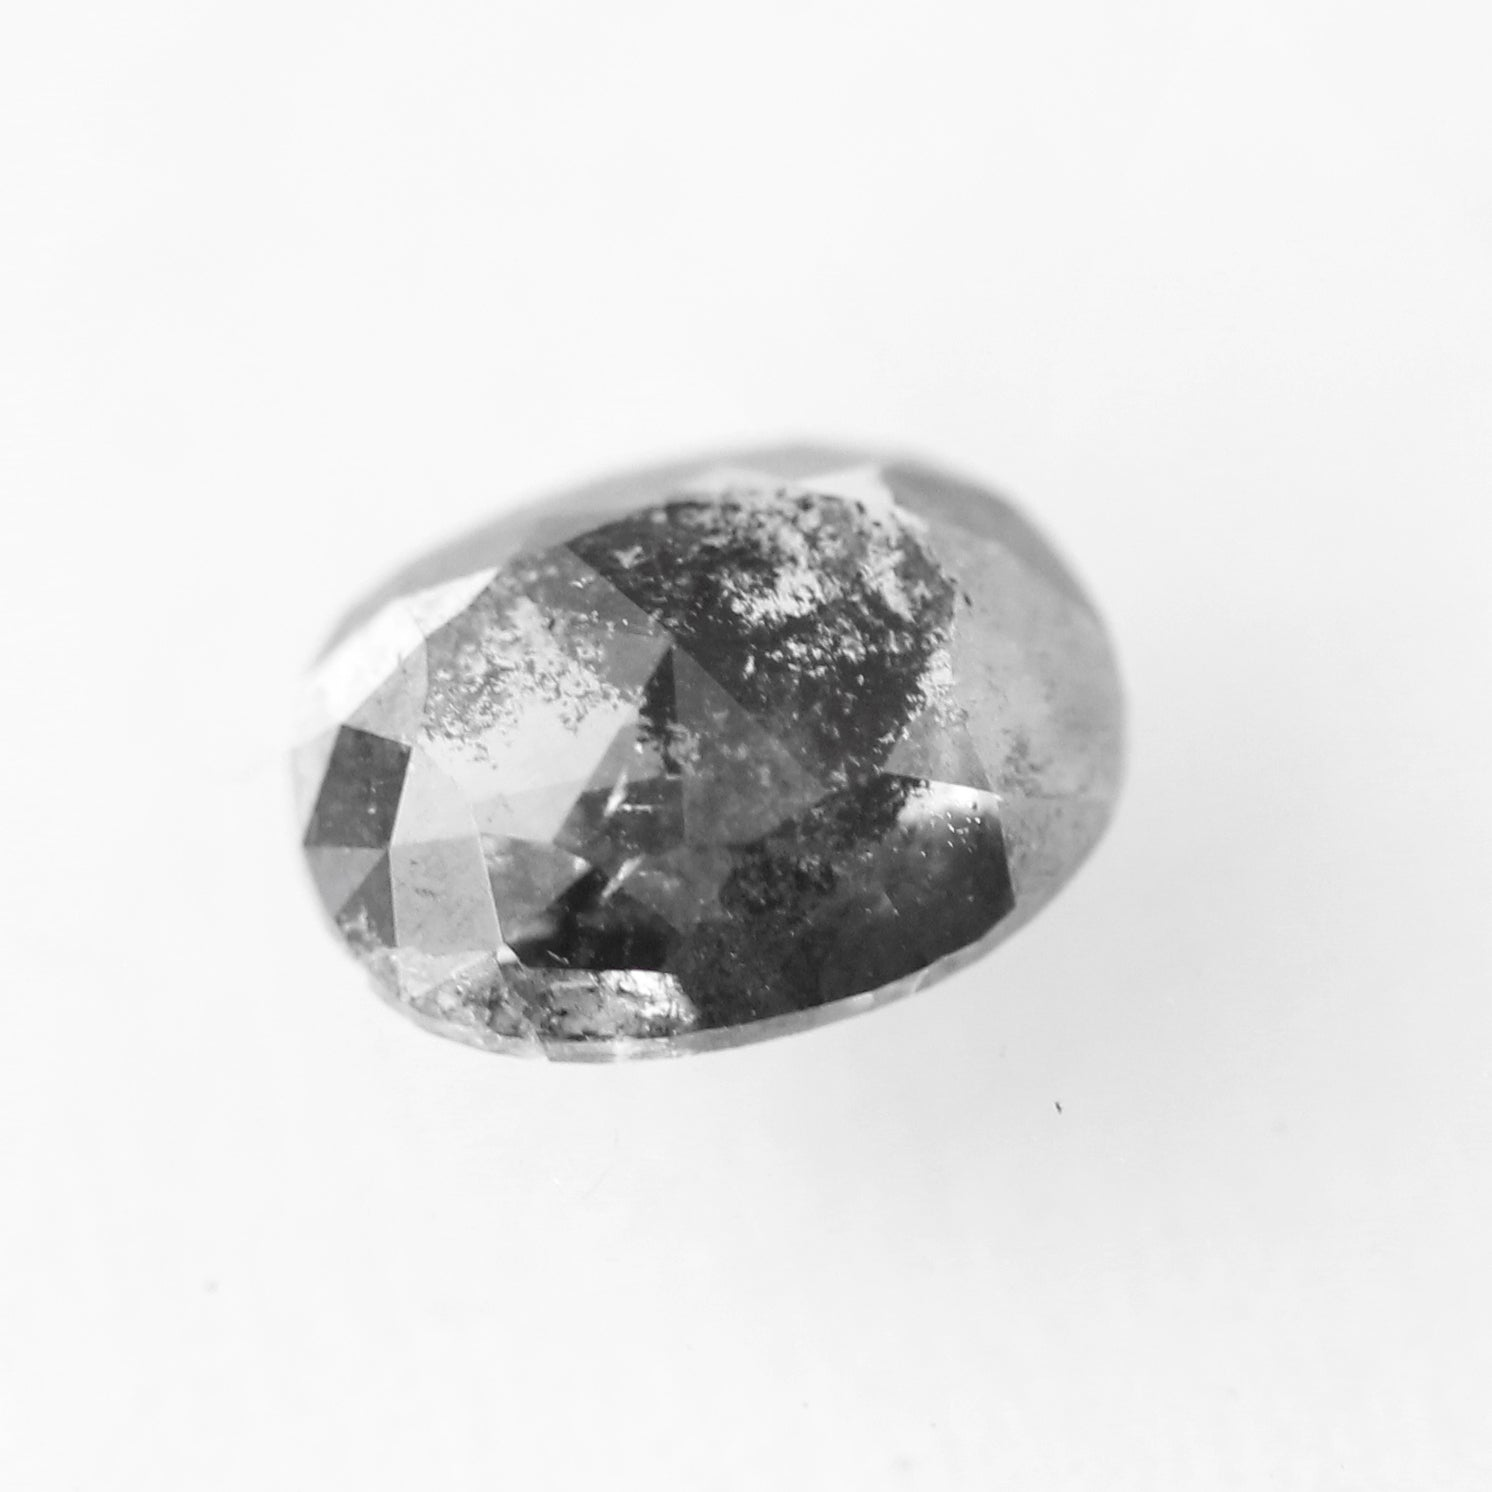 1.22 Carat Oval Diamond- Inventory Code RO122C - Celestial Diamonds ® by Midwinter Co.